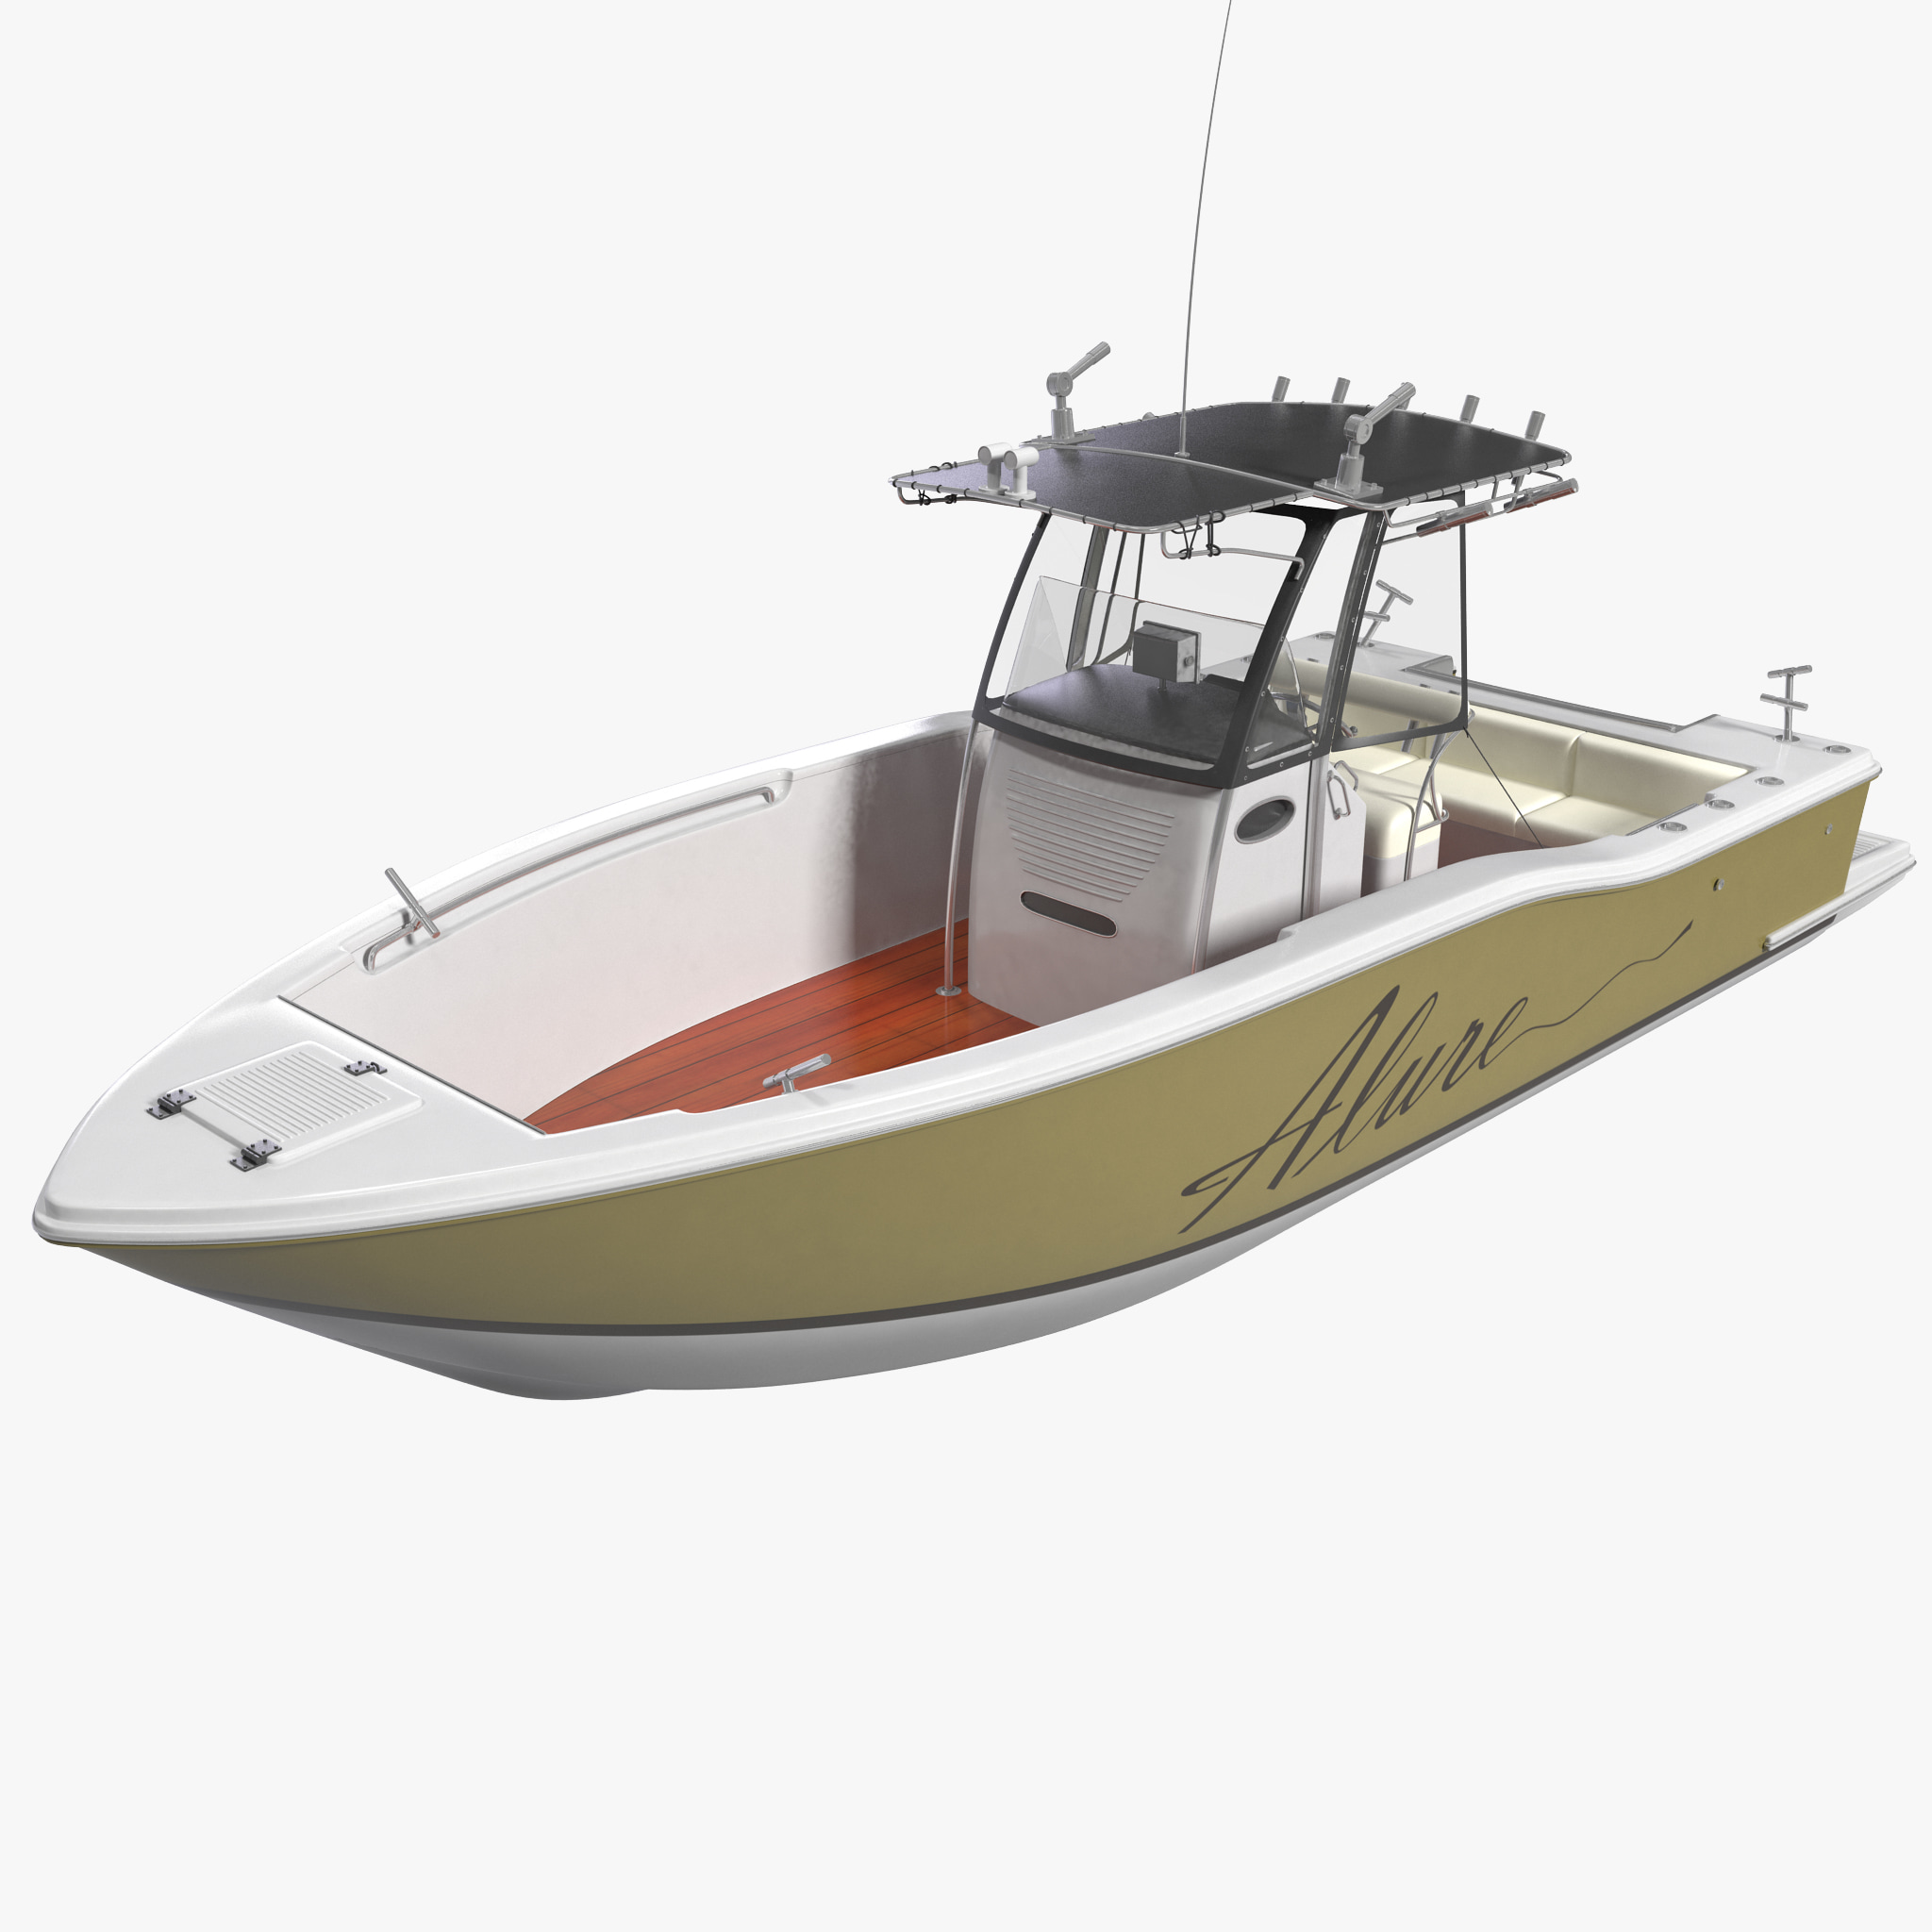 Ski Boat Png Fishing Boat Png Fishing boatSki Boat Png